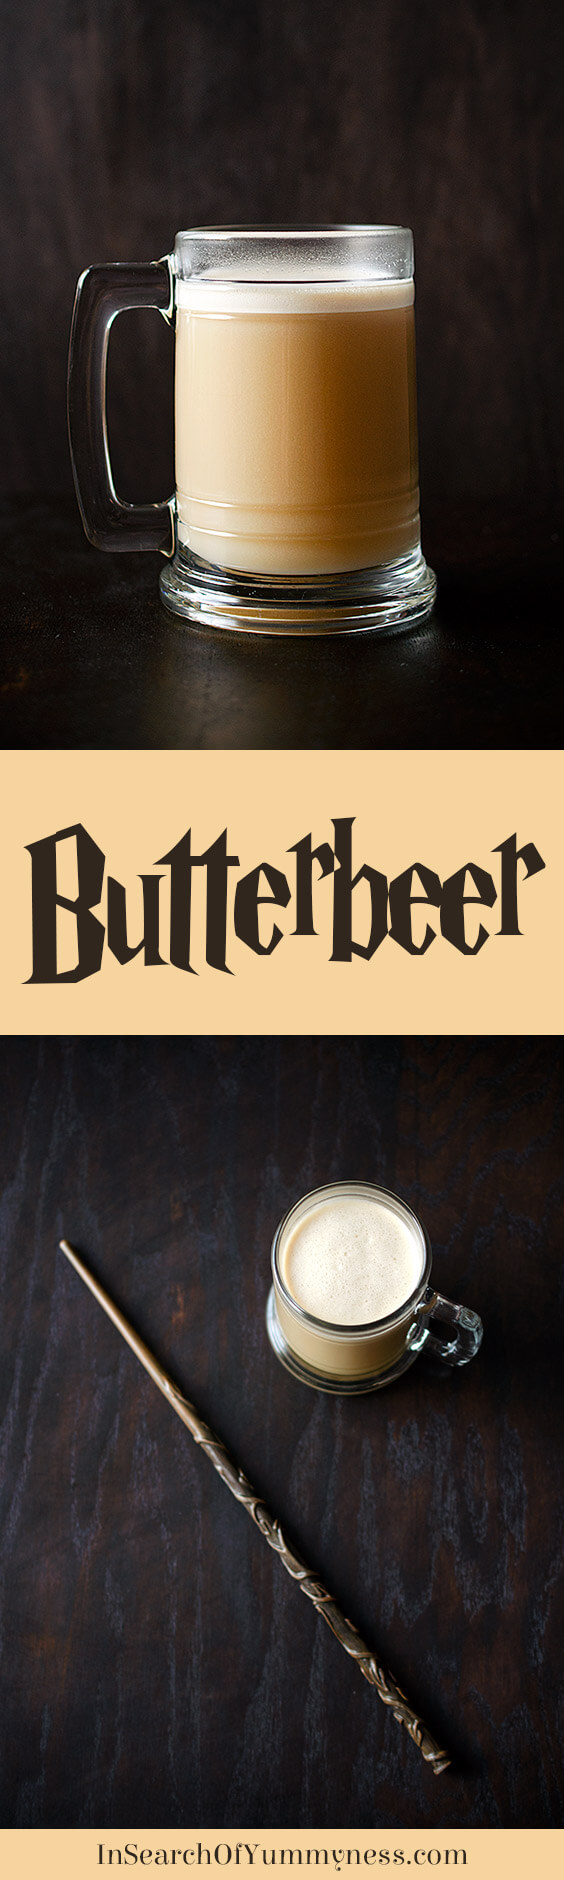 You don't have to travel to a Harry Potter theme park to enjoy Butterbeer! You can make this version at home with just a few ingredients. Get the recipe at InSearchOfYummyness.com